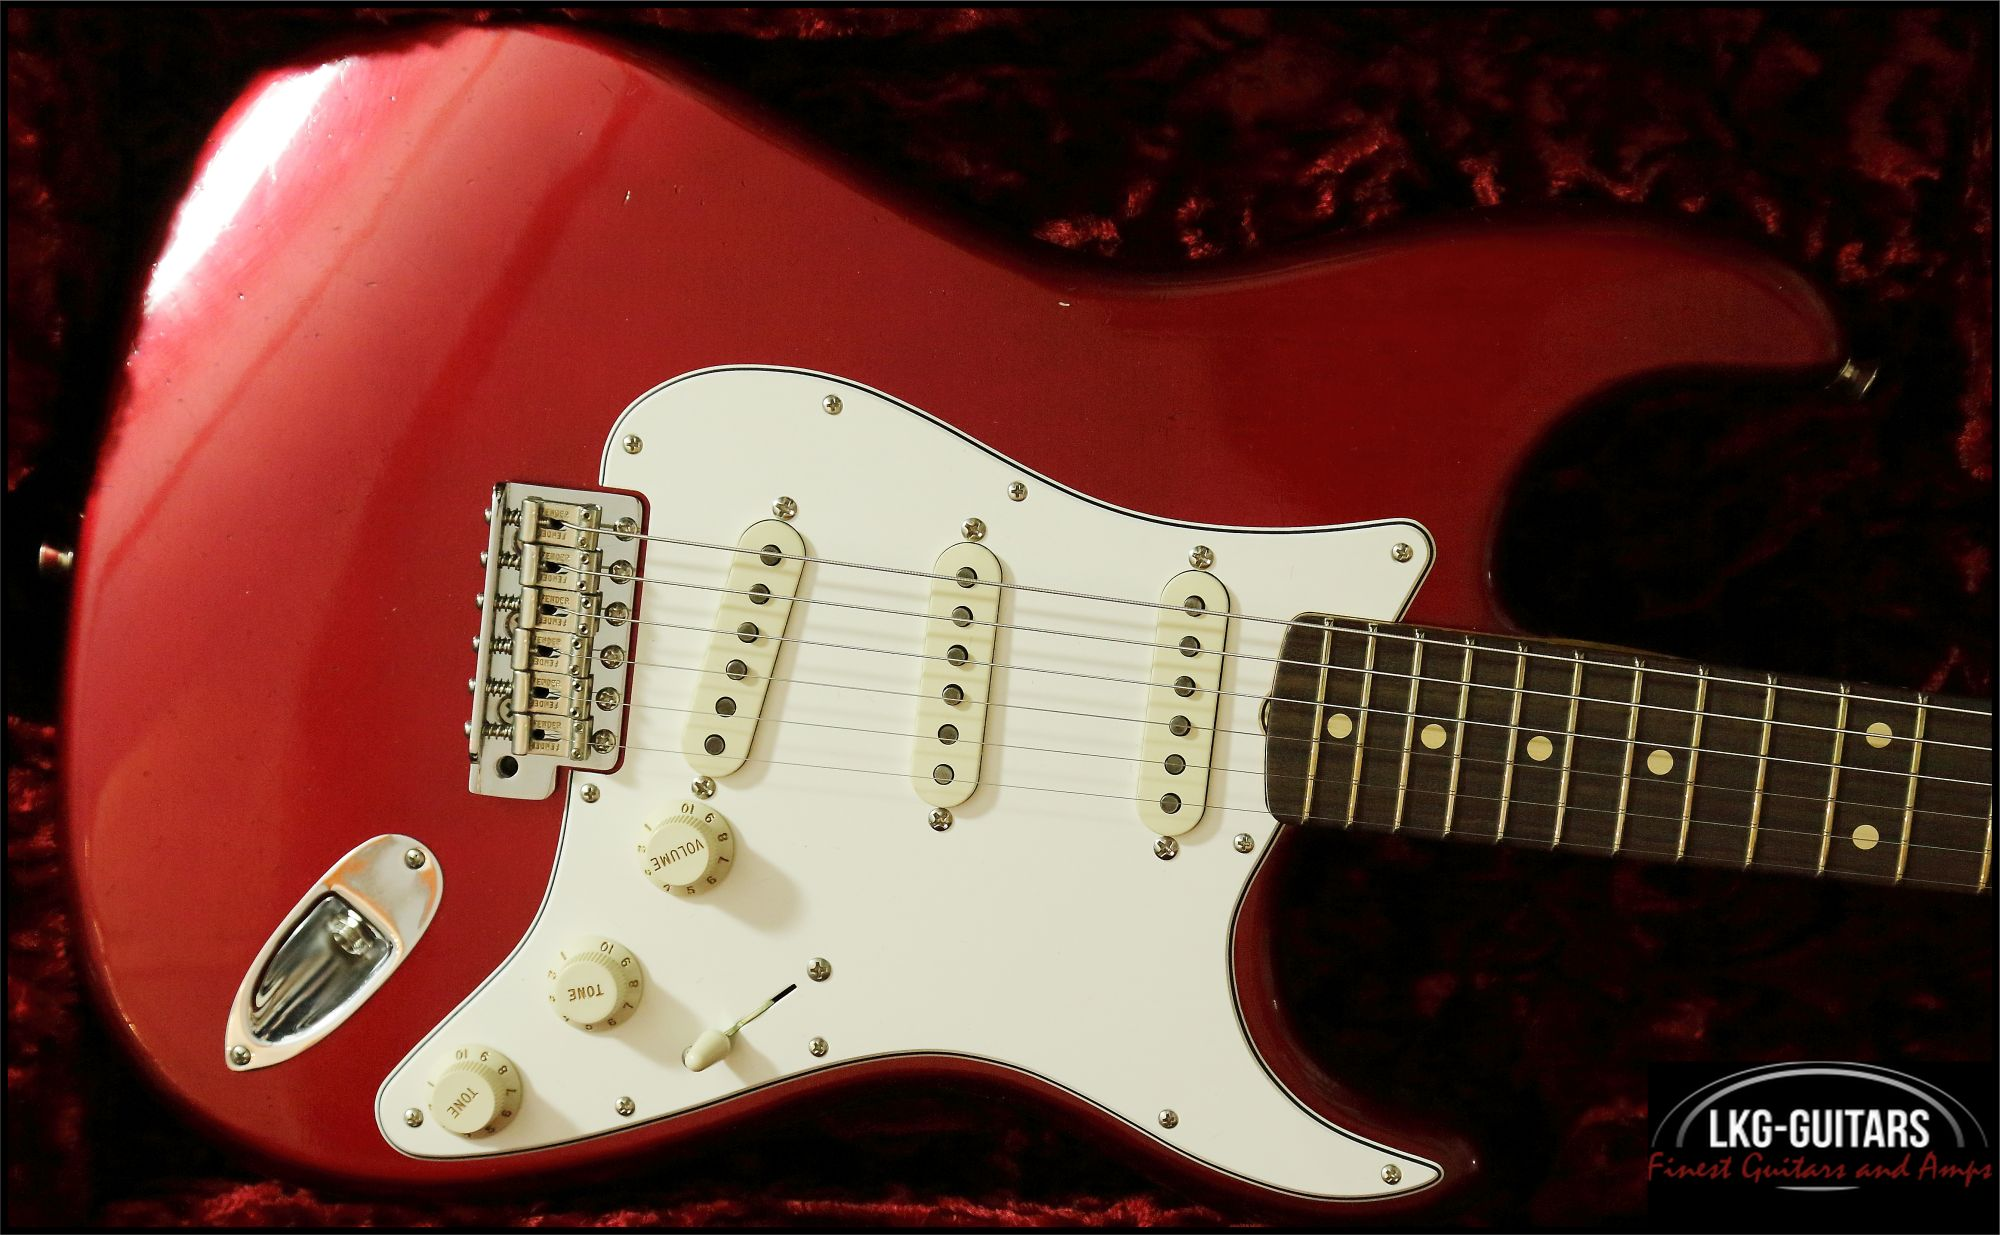 Fender Customshop 1960 Stratocaster Duo Tone Candy Apple Red